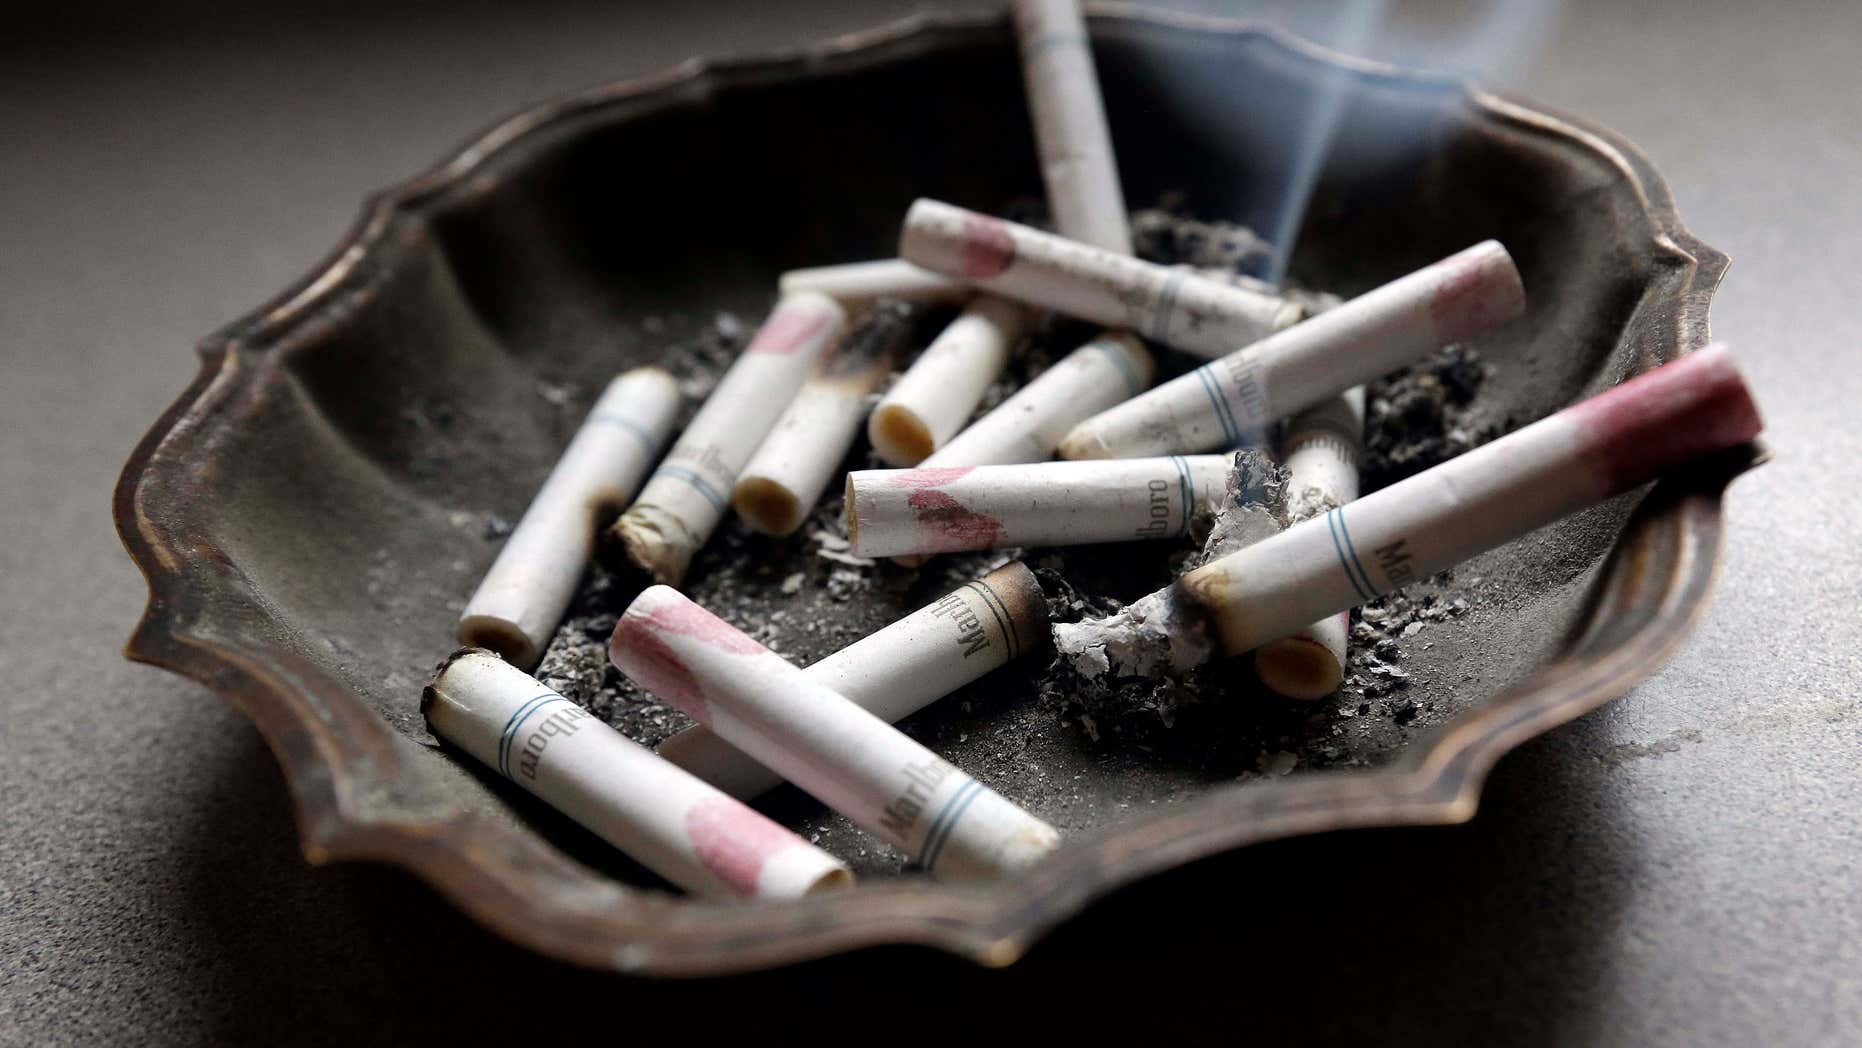 FILE - In this Saturday, March 2, 2013, photo, a cigarette burns in an ashtray at a home in Hayneville, Ala.